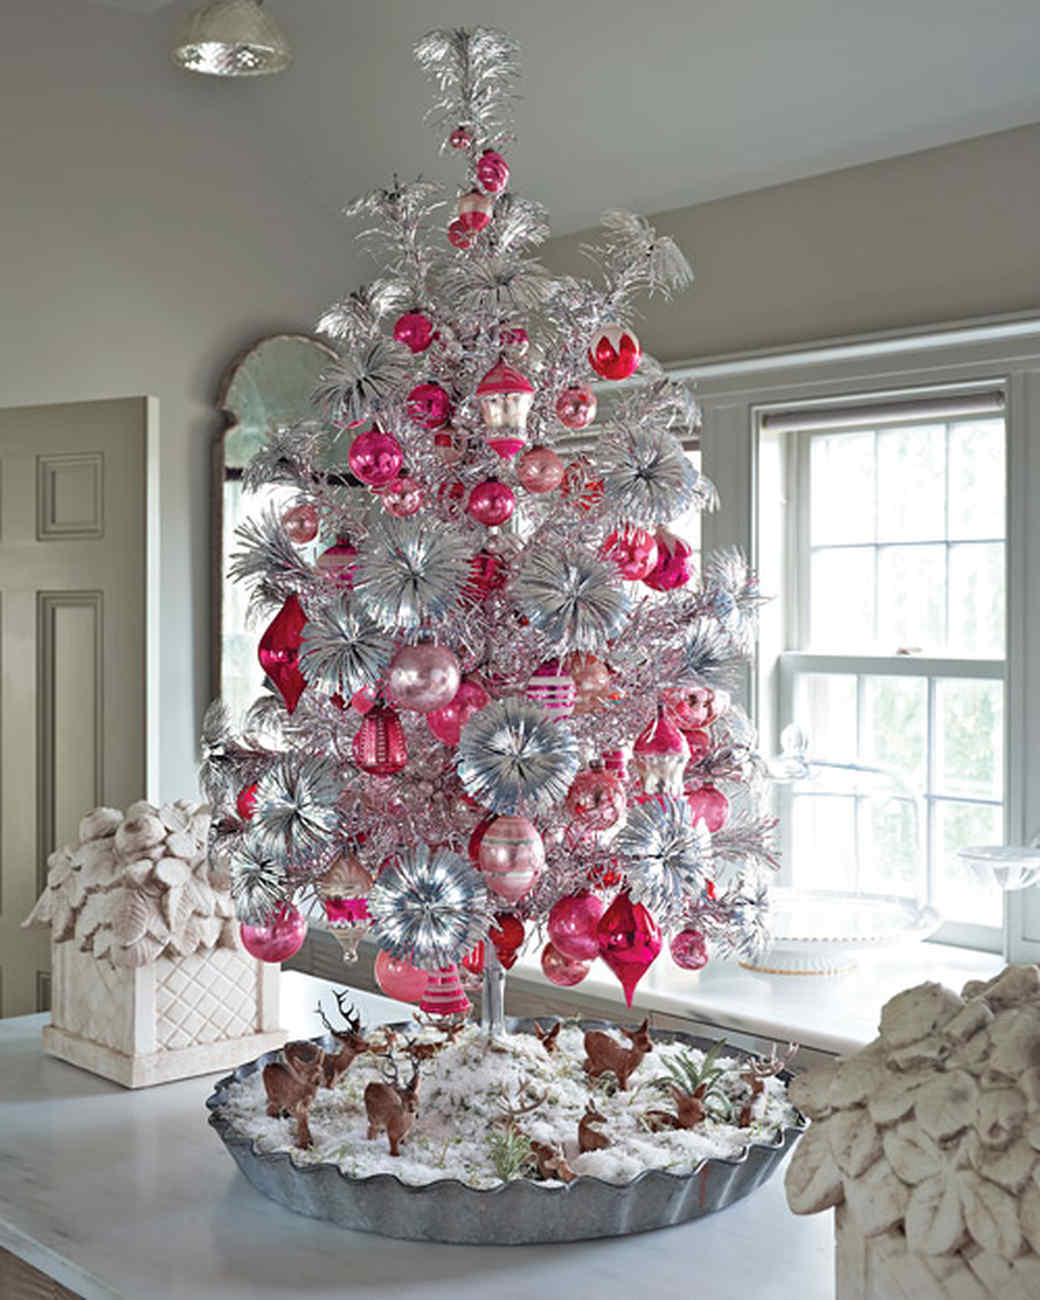 28 creative christmas tree decorating ideas martha stewart - Pictures Of White Christmas Trees Decorated